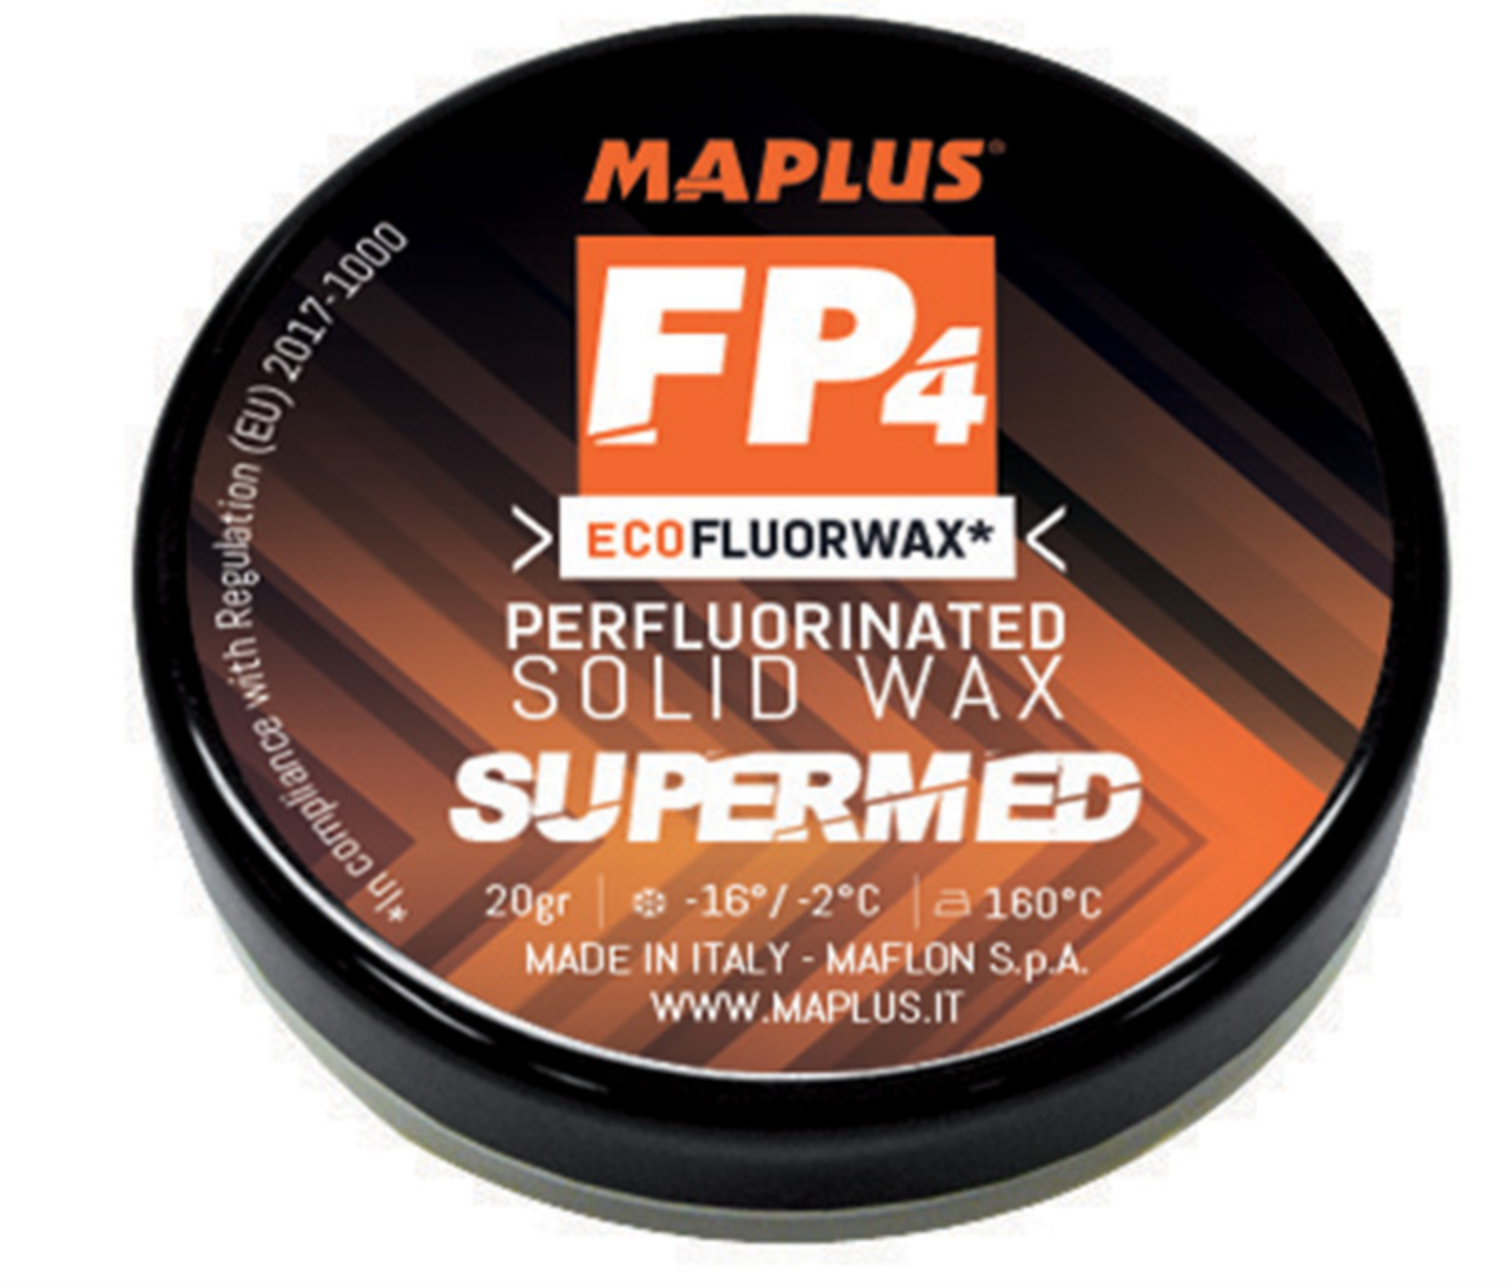 MAPLUS FP4 SUPERMED Block